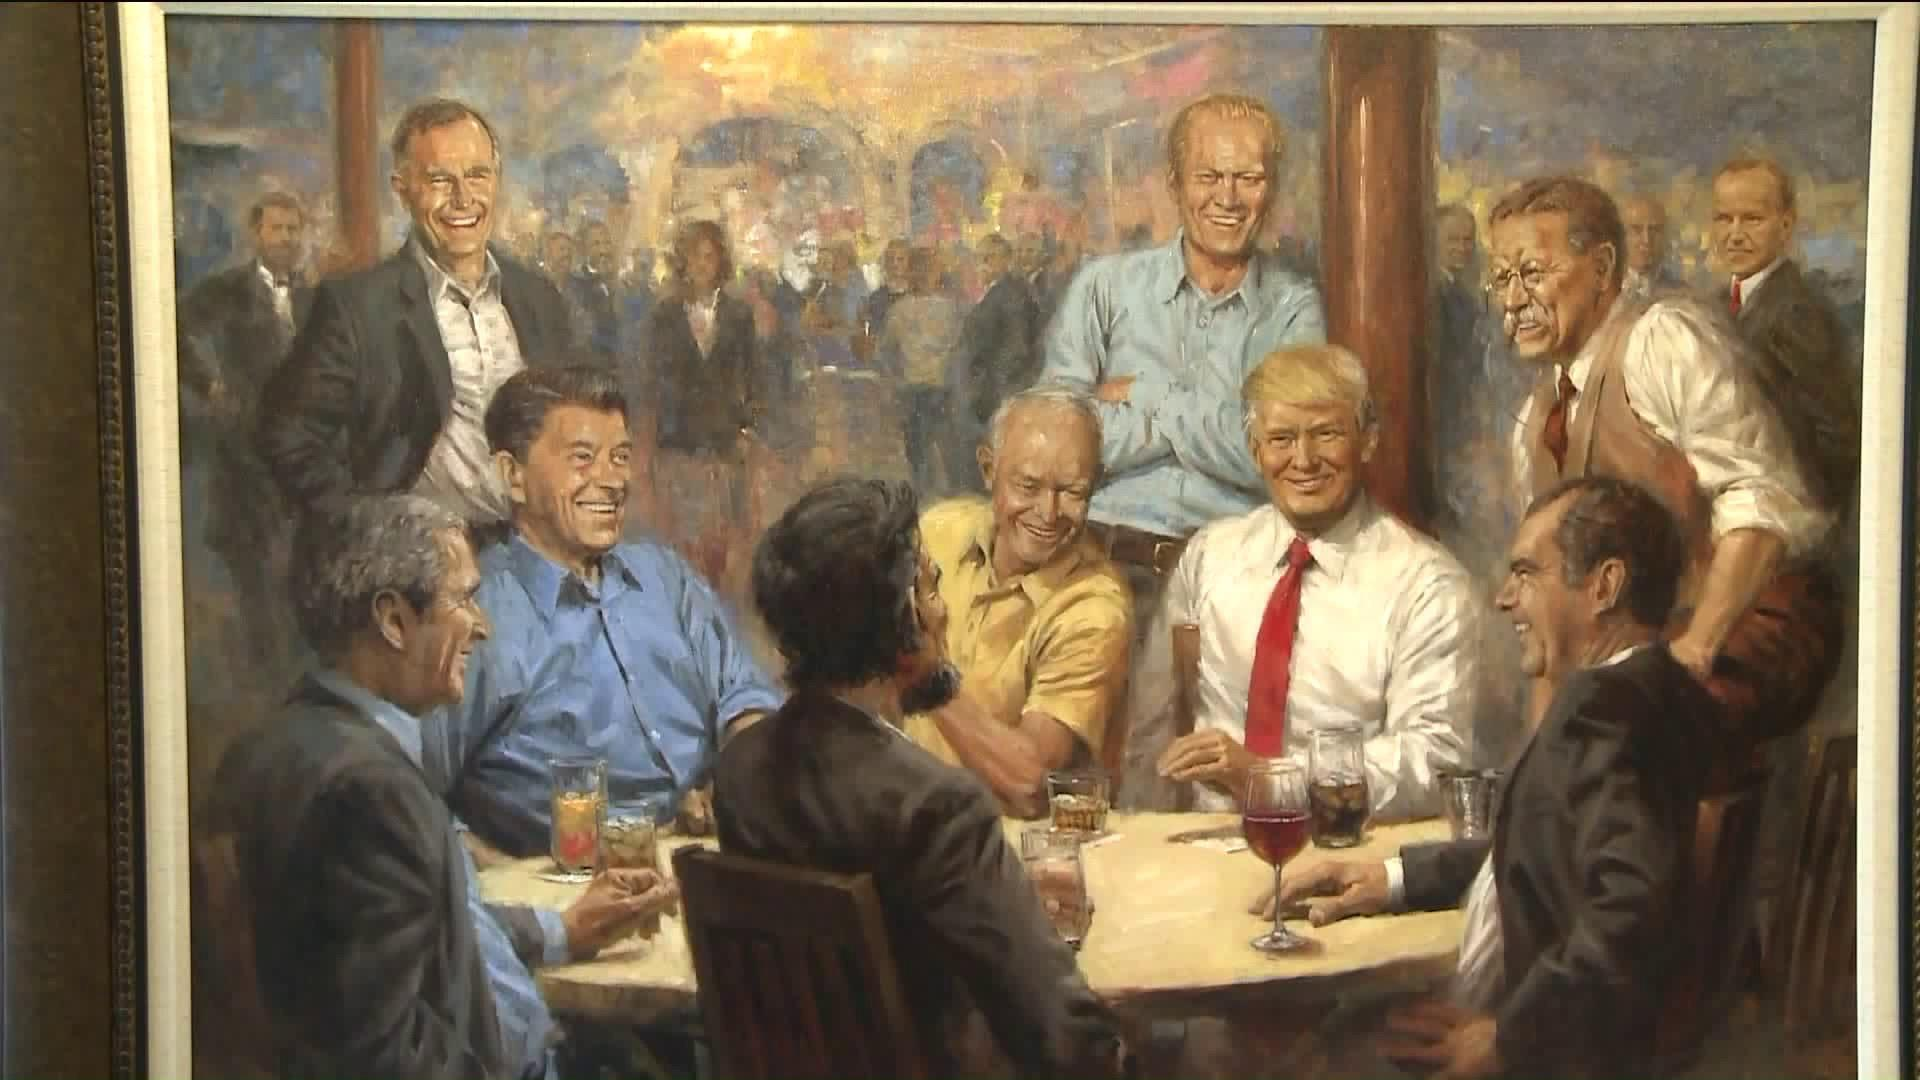 Painting Of Donald Trump Chilling With Other GOP Presidents Gets Scathing Reworking